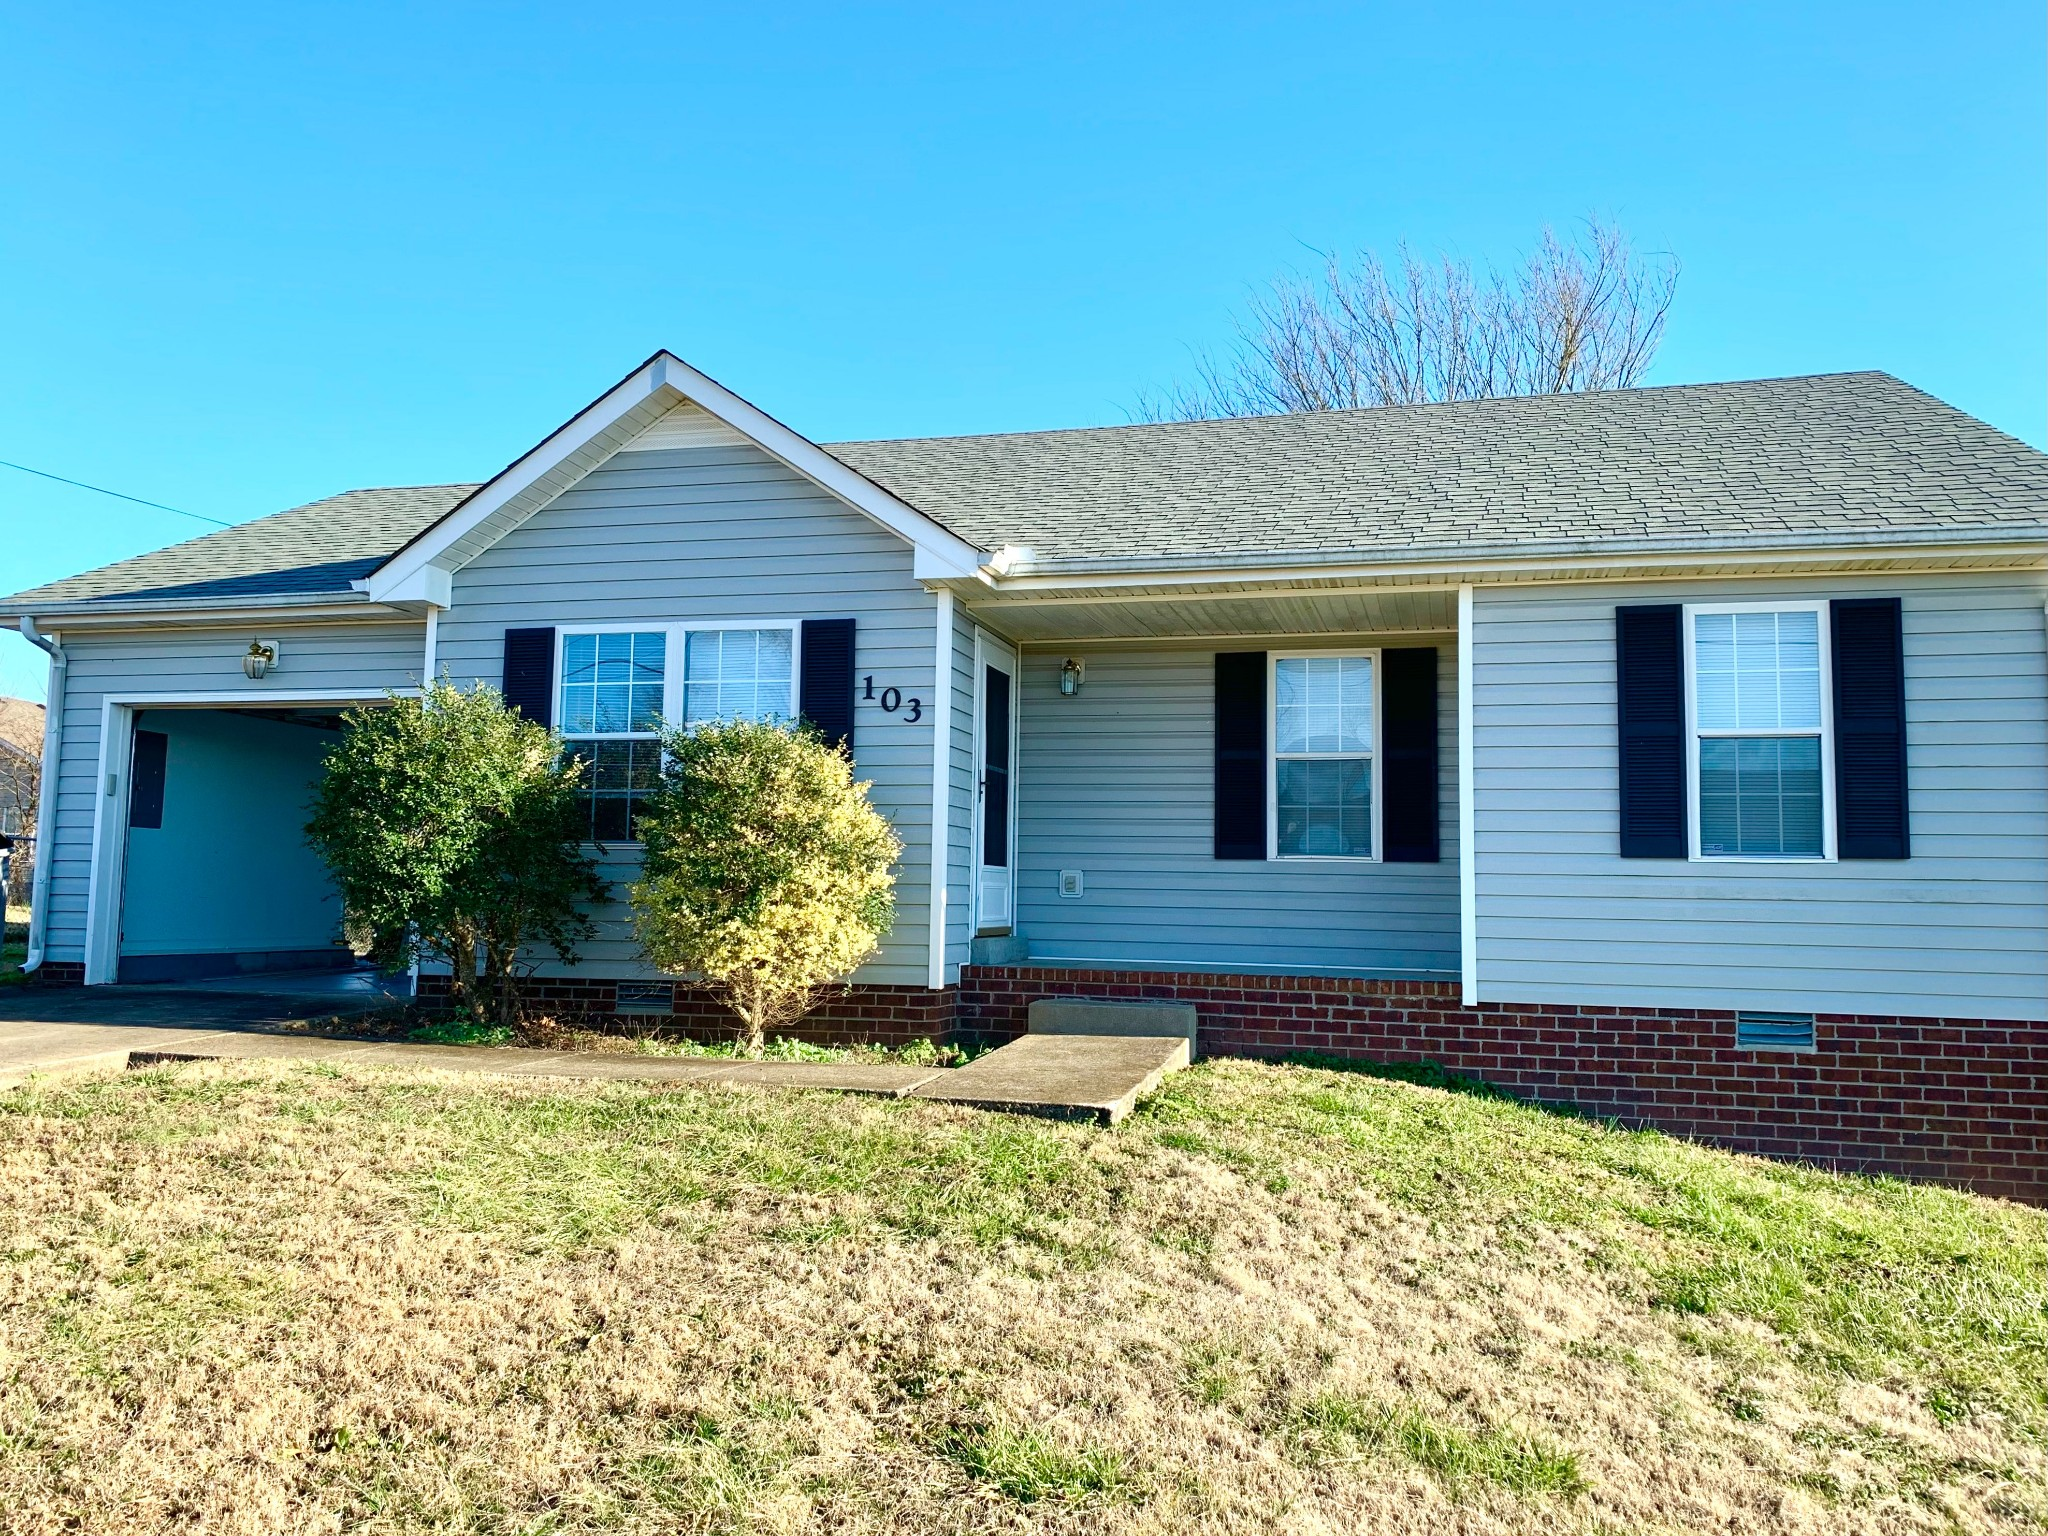 103 Pappy Dr Property Photo - Oak Grove, KY real estate listing